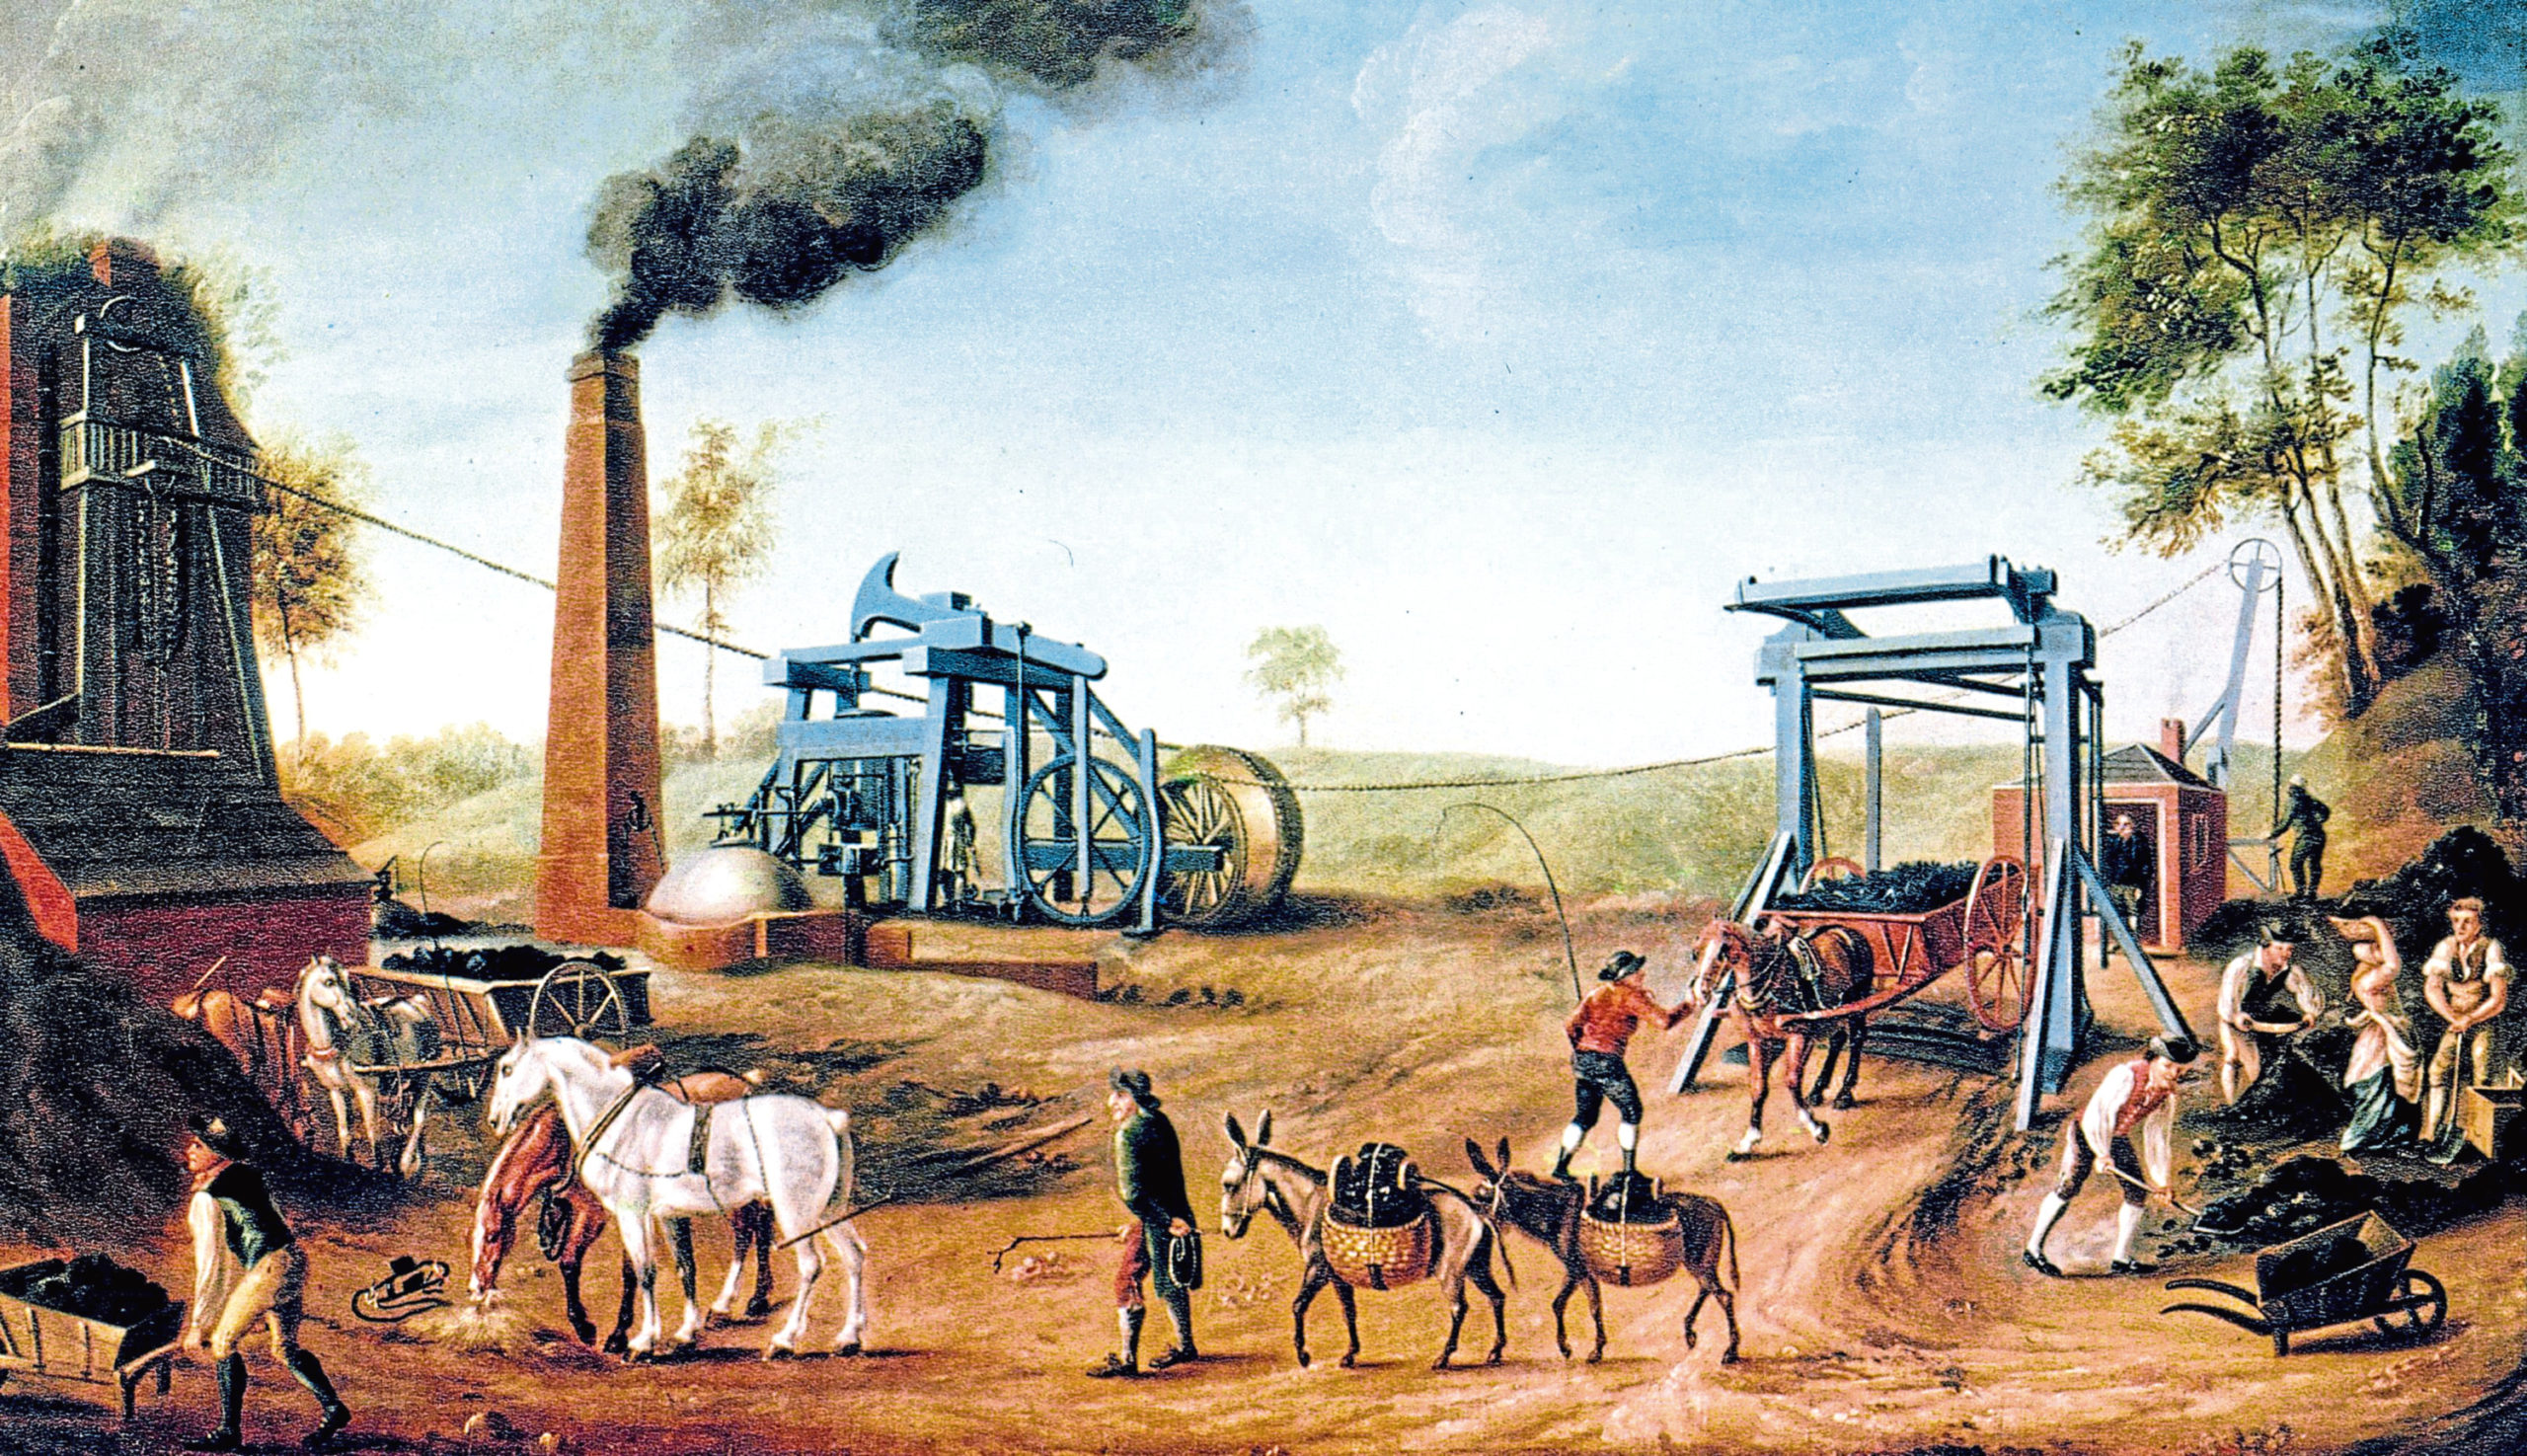 Painting of a James Watt steam engine at a coal mine in the 1790s. Scot William Murdoch is said to have made many improvements to the design but was never credited